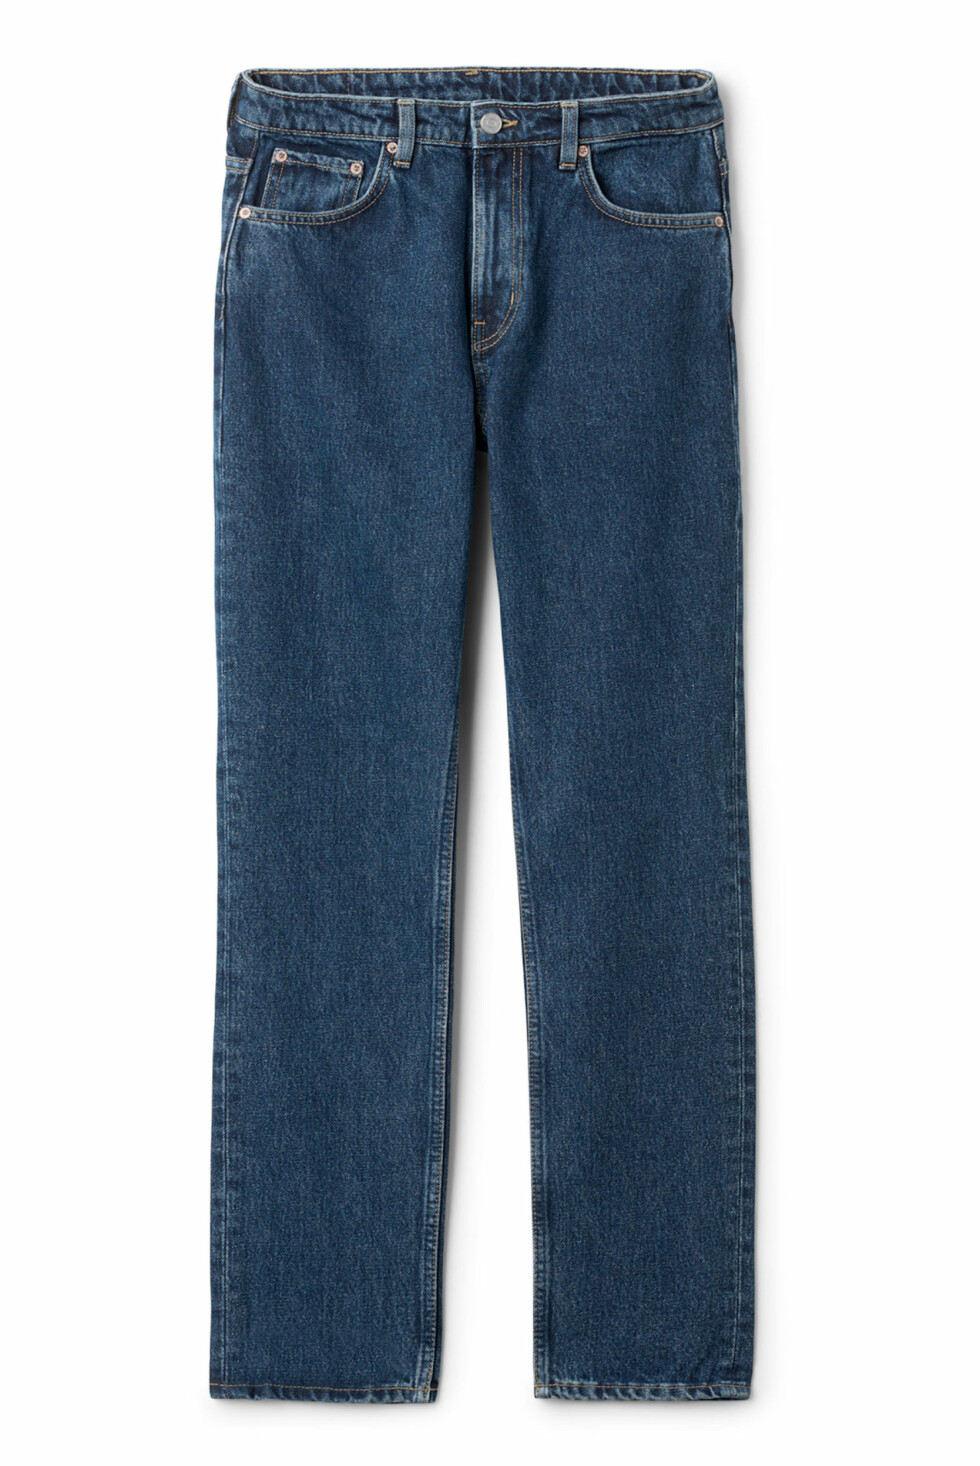 <strong>Jeans fra Weekday |500,-| https:</strong>//www.weekday.com/en_sek/women/categories/new-arrivals/_jcr_content/subdepartmentPar/productlisting_86054396.products/product.seattle-win-jeans-blue.0569671001.html